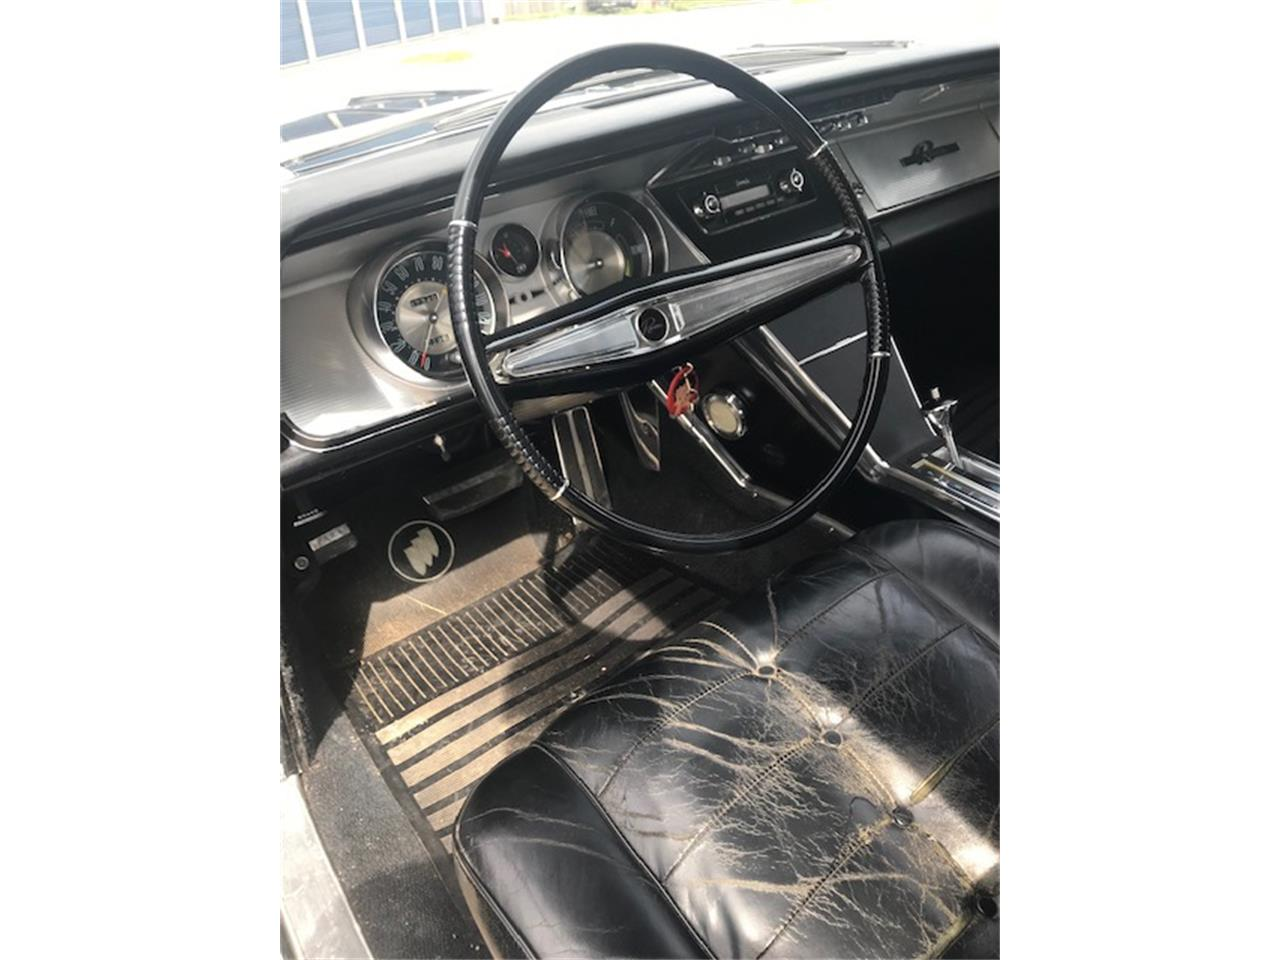 Large Picture of Classic '63 Buick Riviera located in Austin Texas Offered by a Private Seller - Q8L8